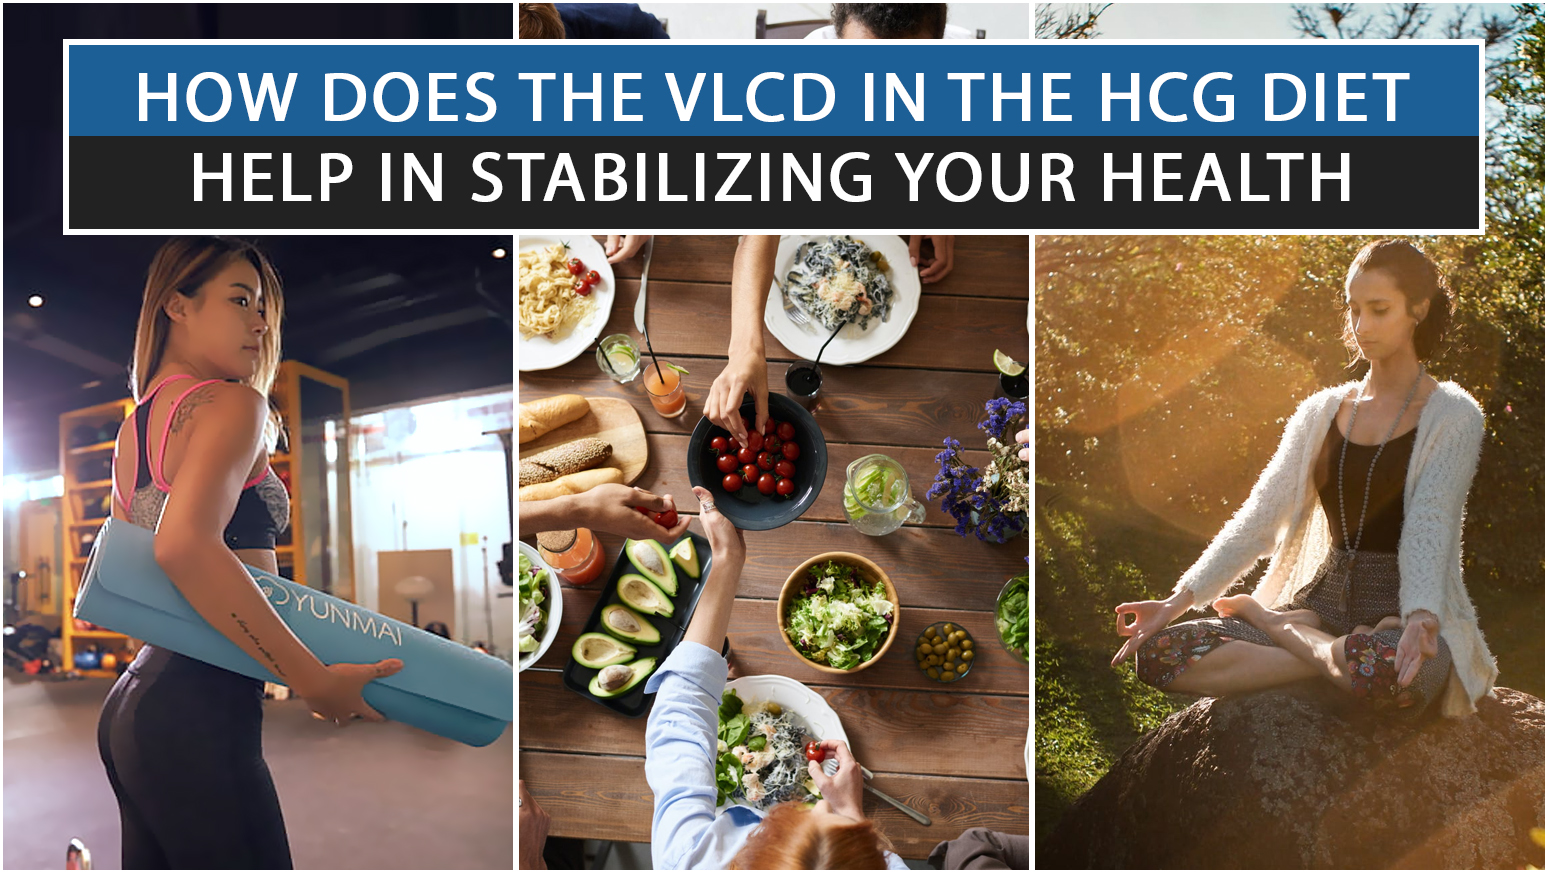 HOW DOES THE VLCD IN THE HCG DIET HELP IN STABILIZING YOUR HEALTH